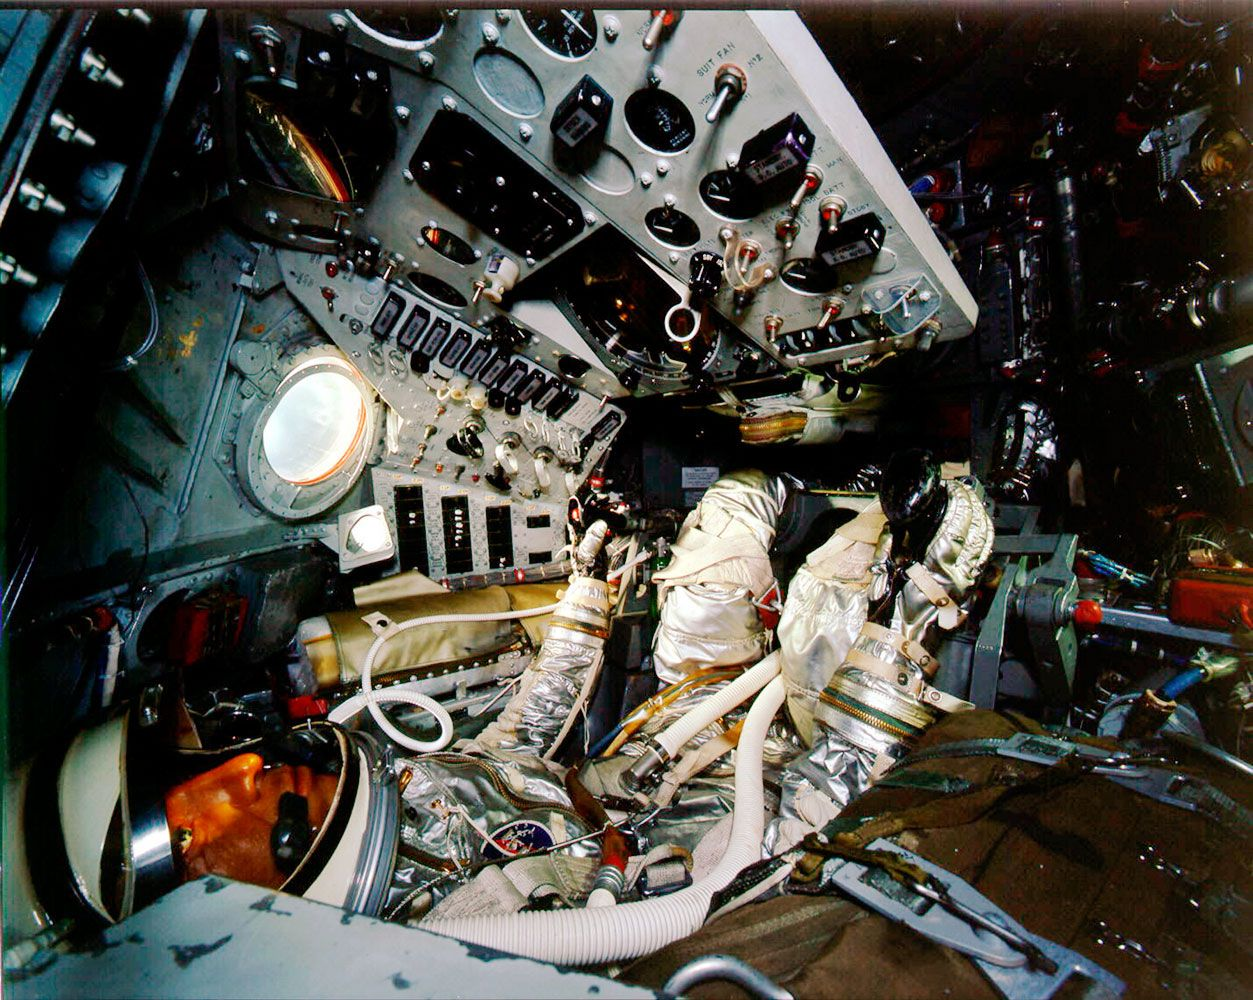 The interior of Shepard's Freedom 7 capsule.   Space ...